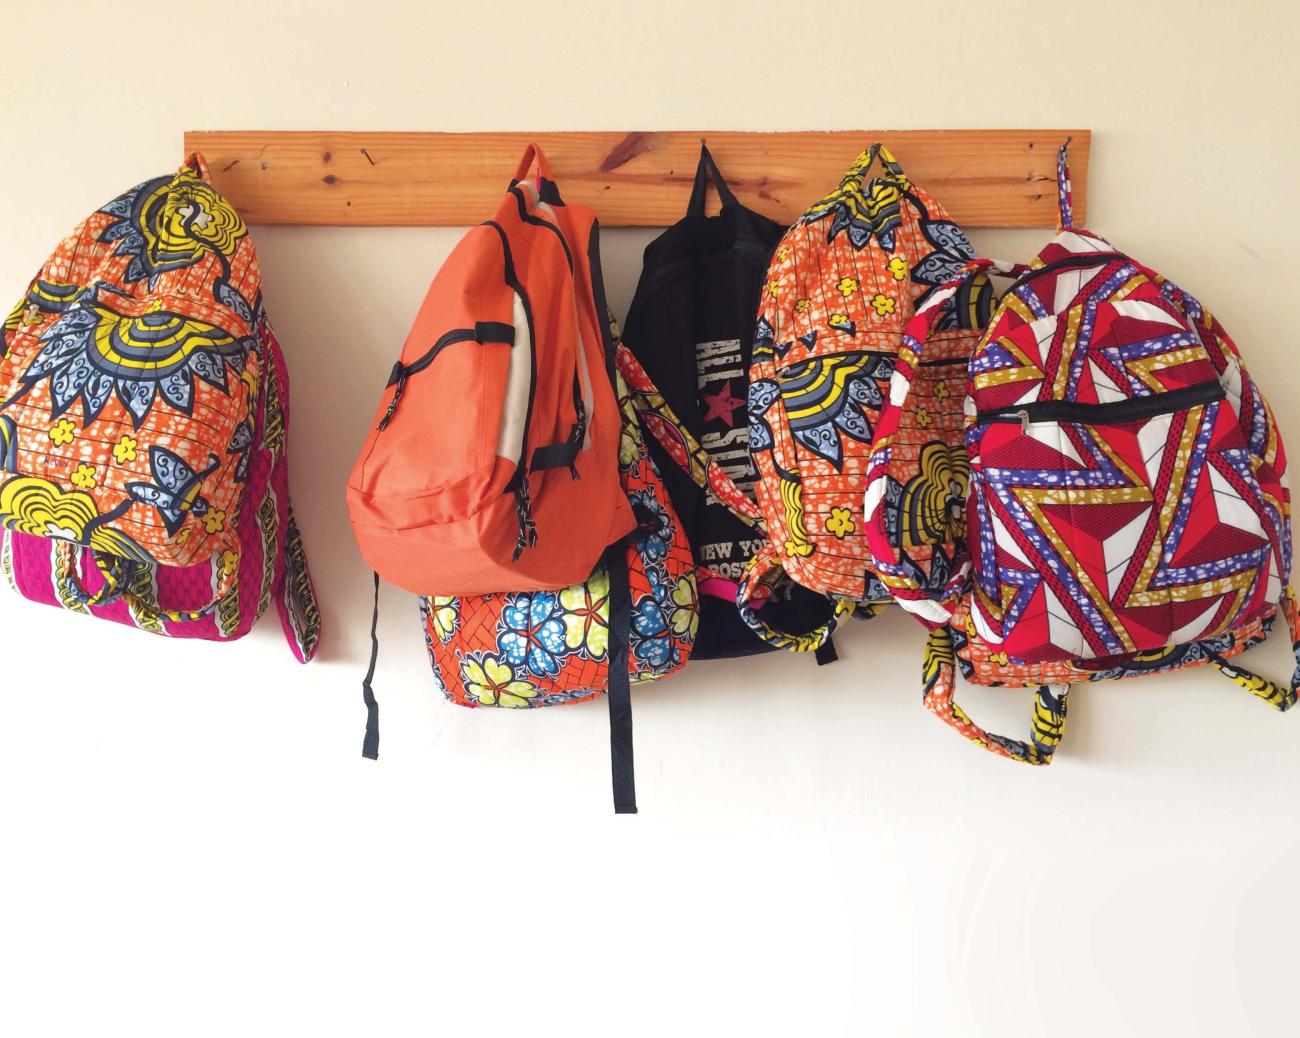 Backpacks in Kitenge fabric that is typical of Rwanda